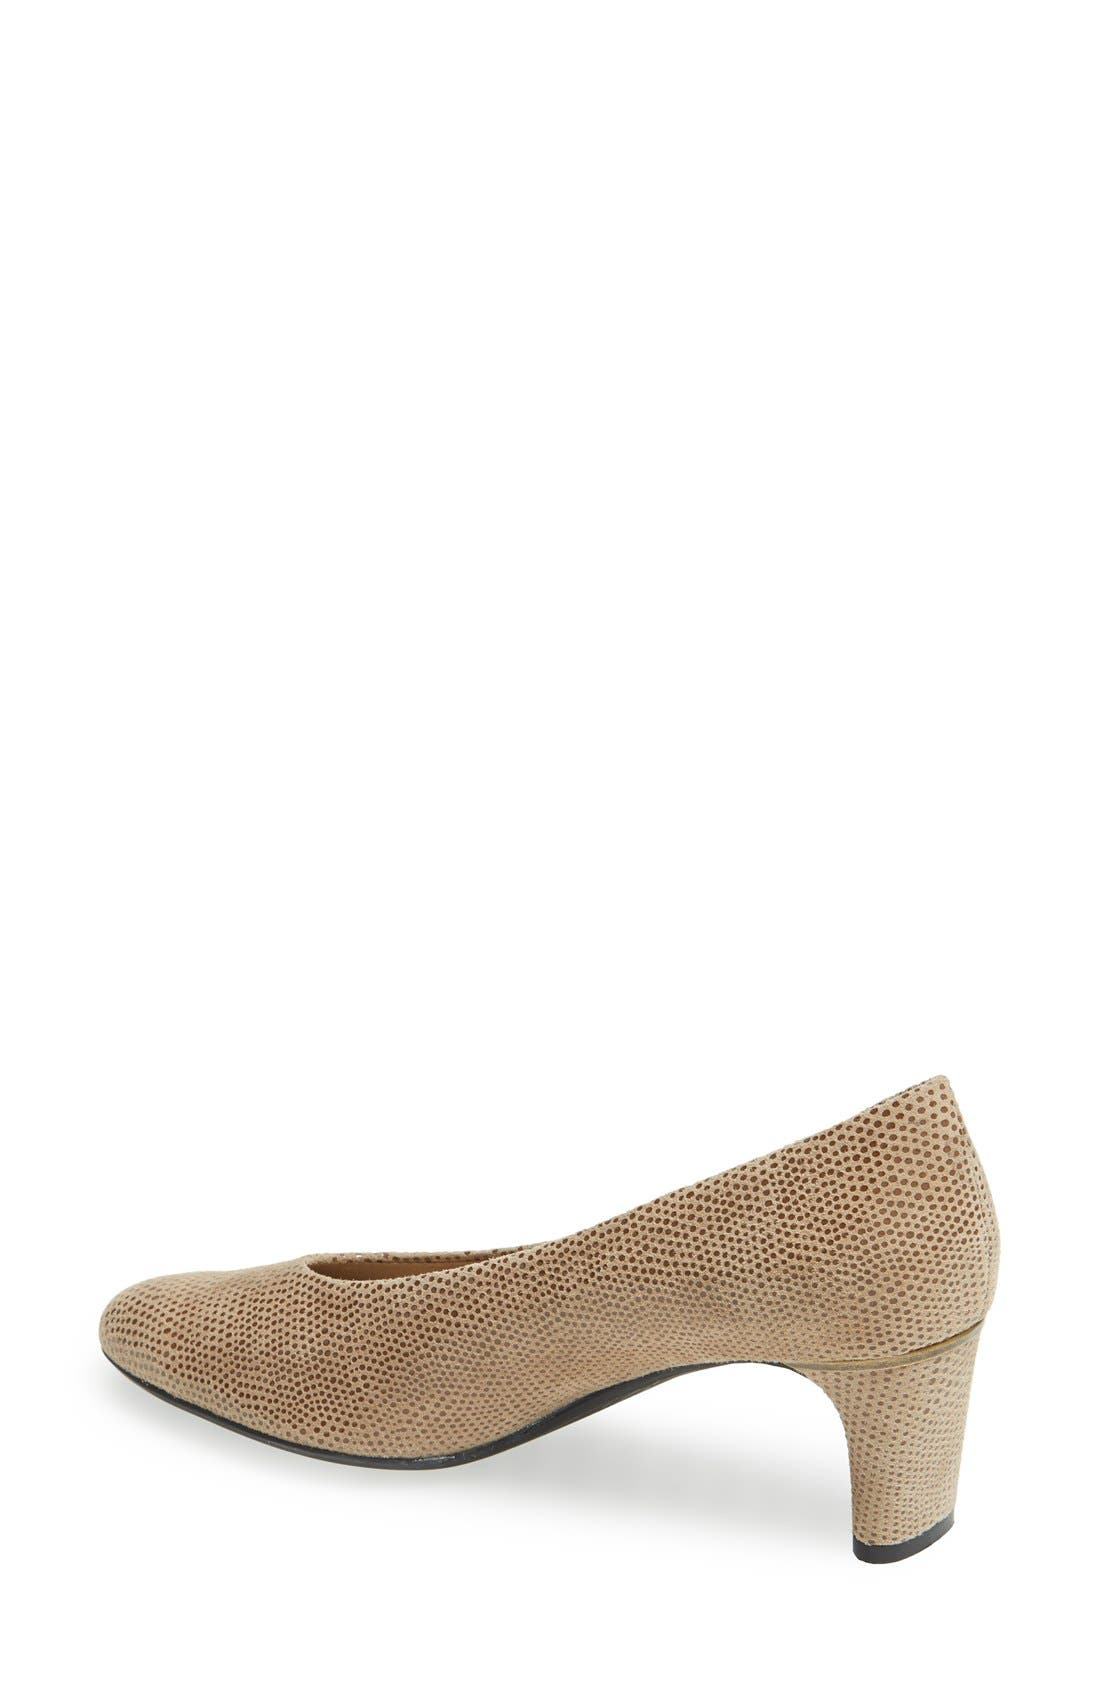 'Dayle' Pump,                             Alternate thumbnail 2, color,                             Taupe Print Leather